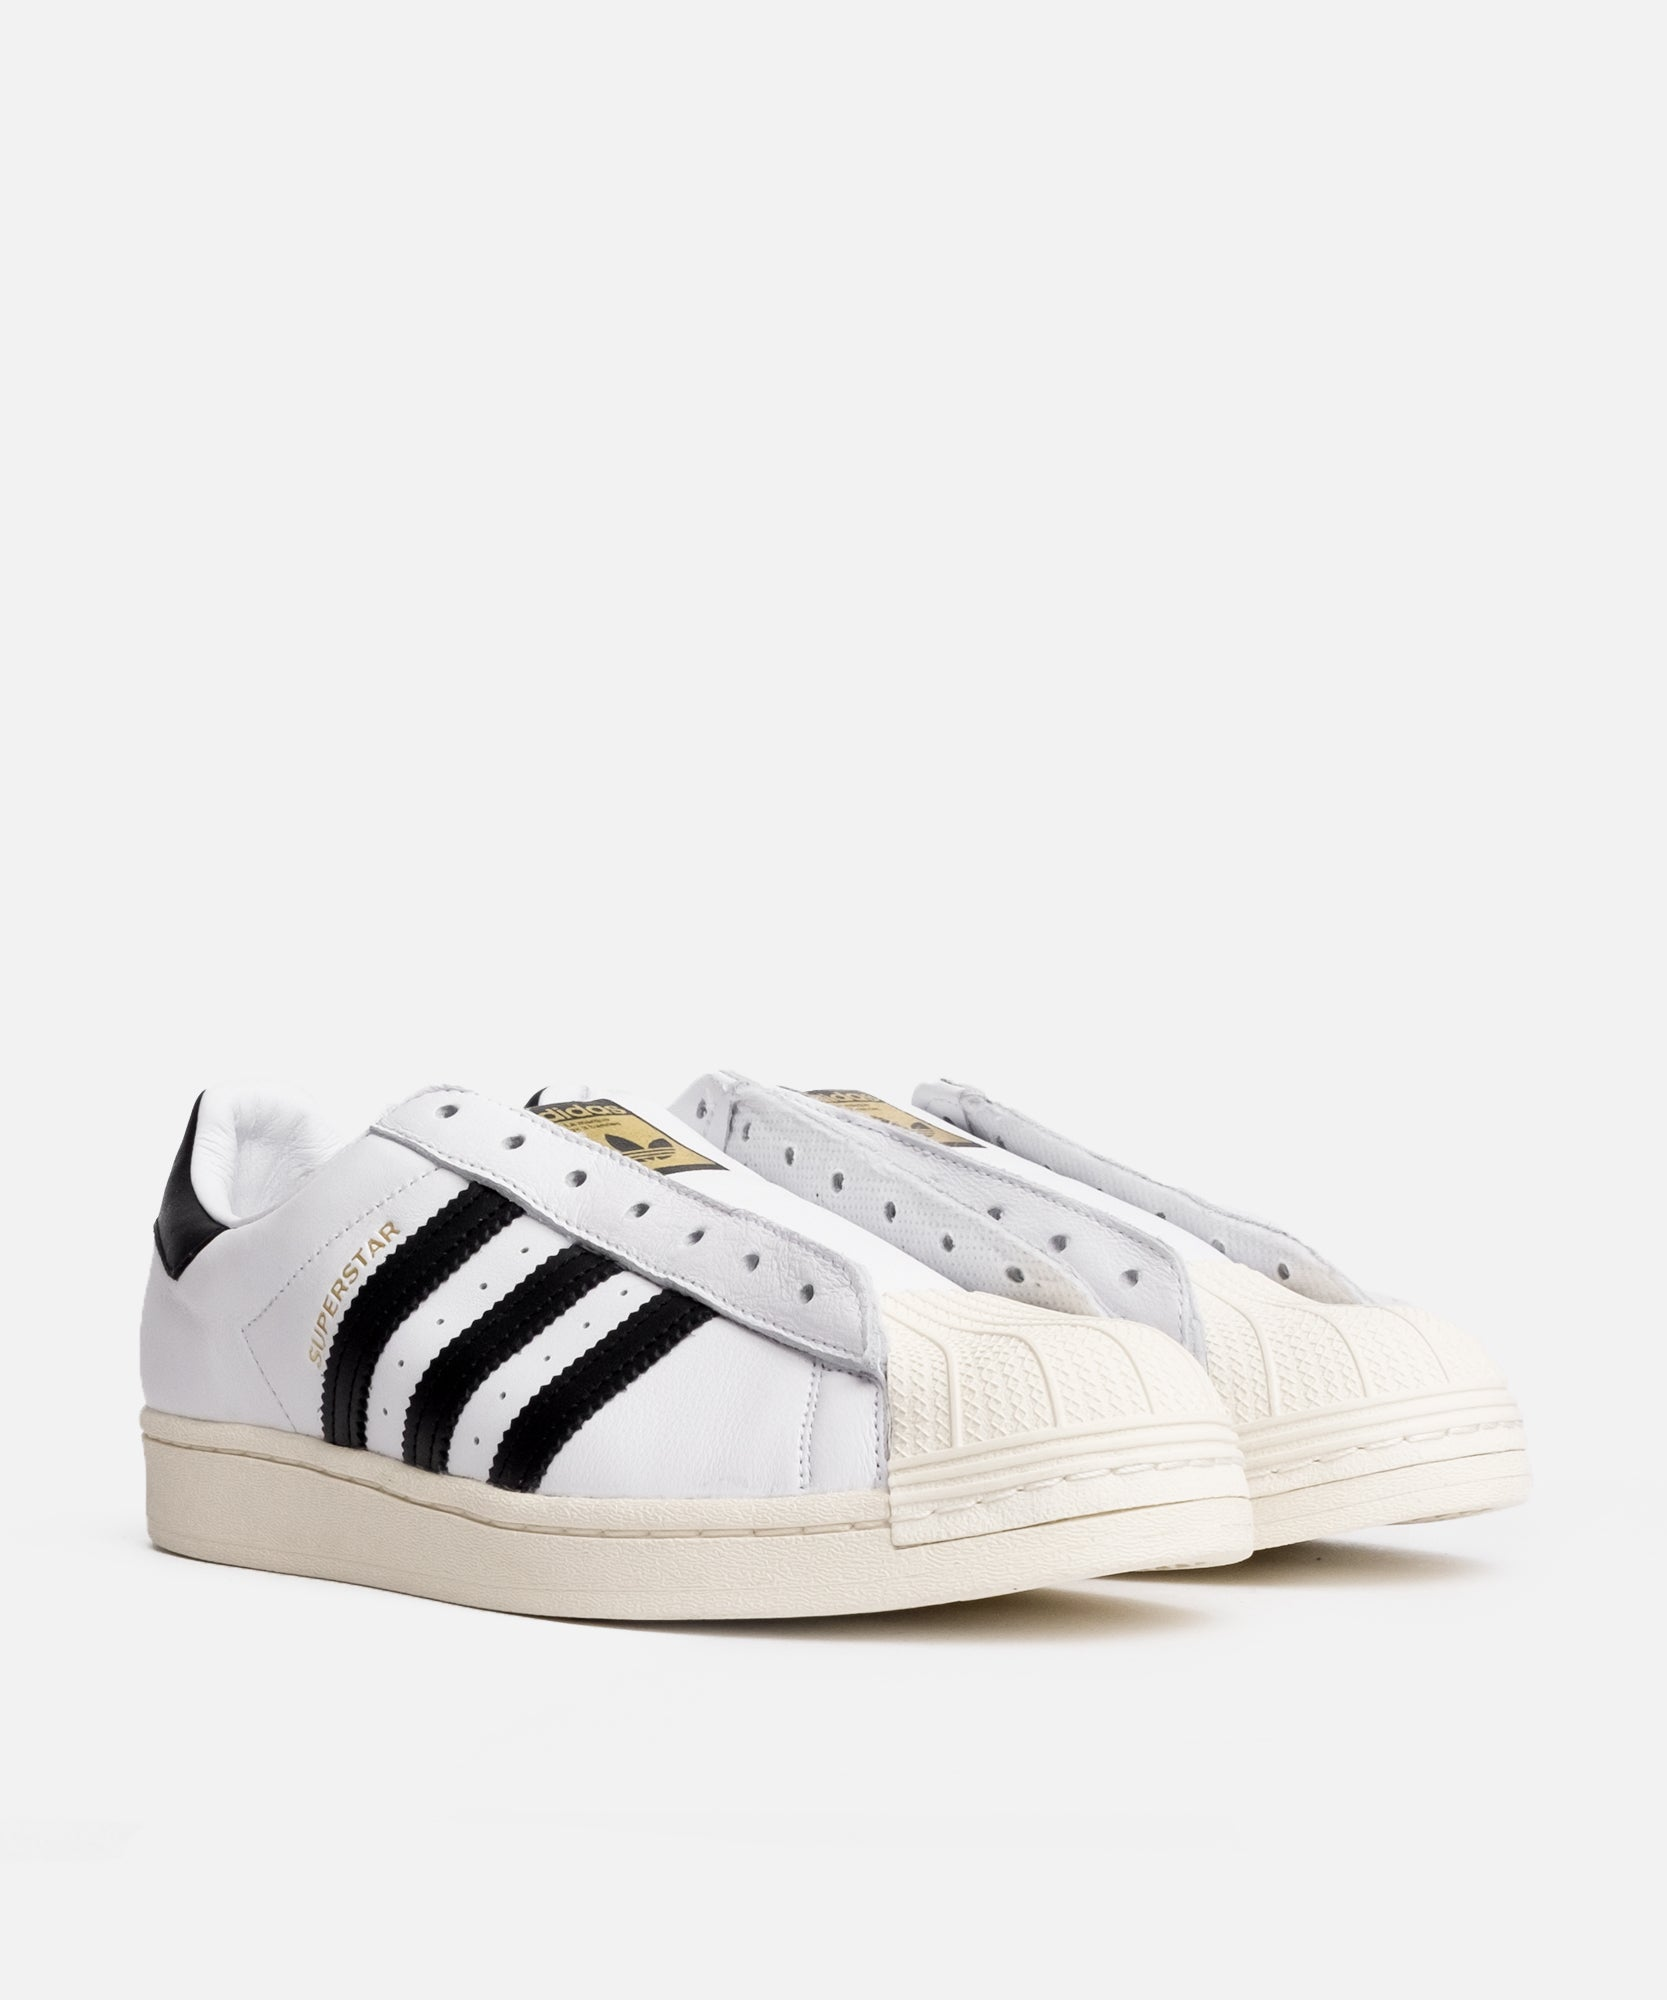 adidas Superstar Laceless WhiteCore Black